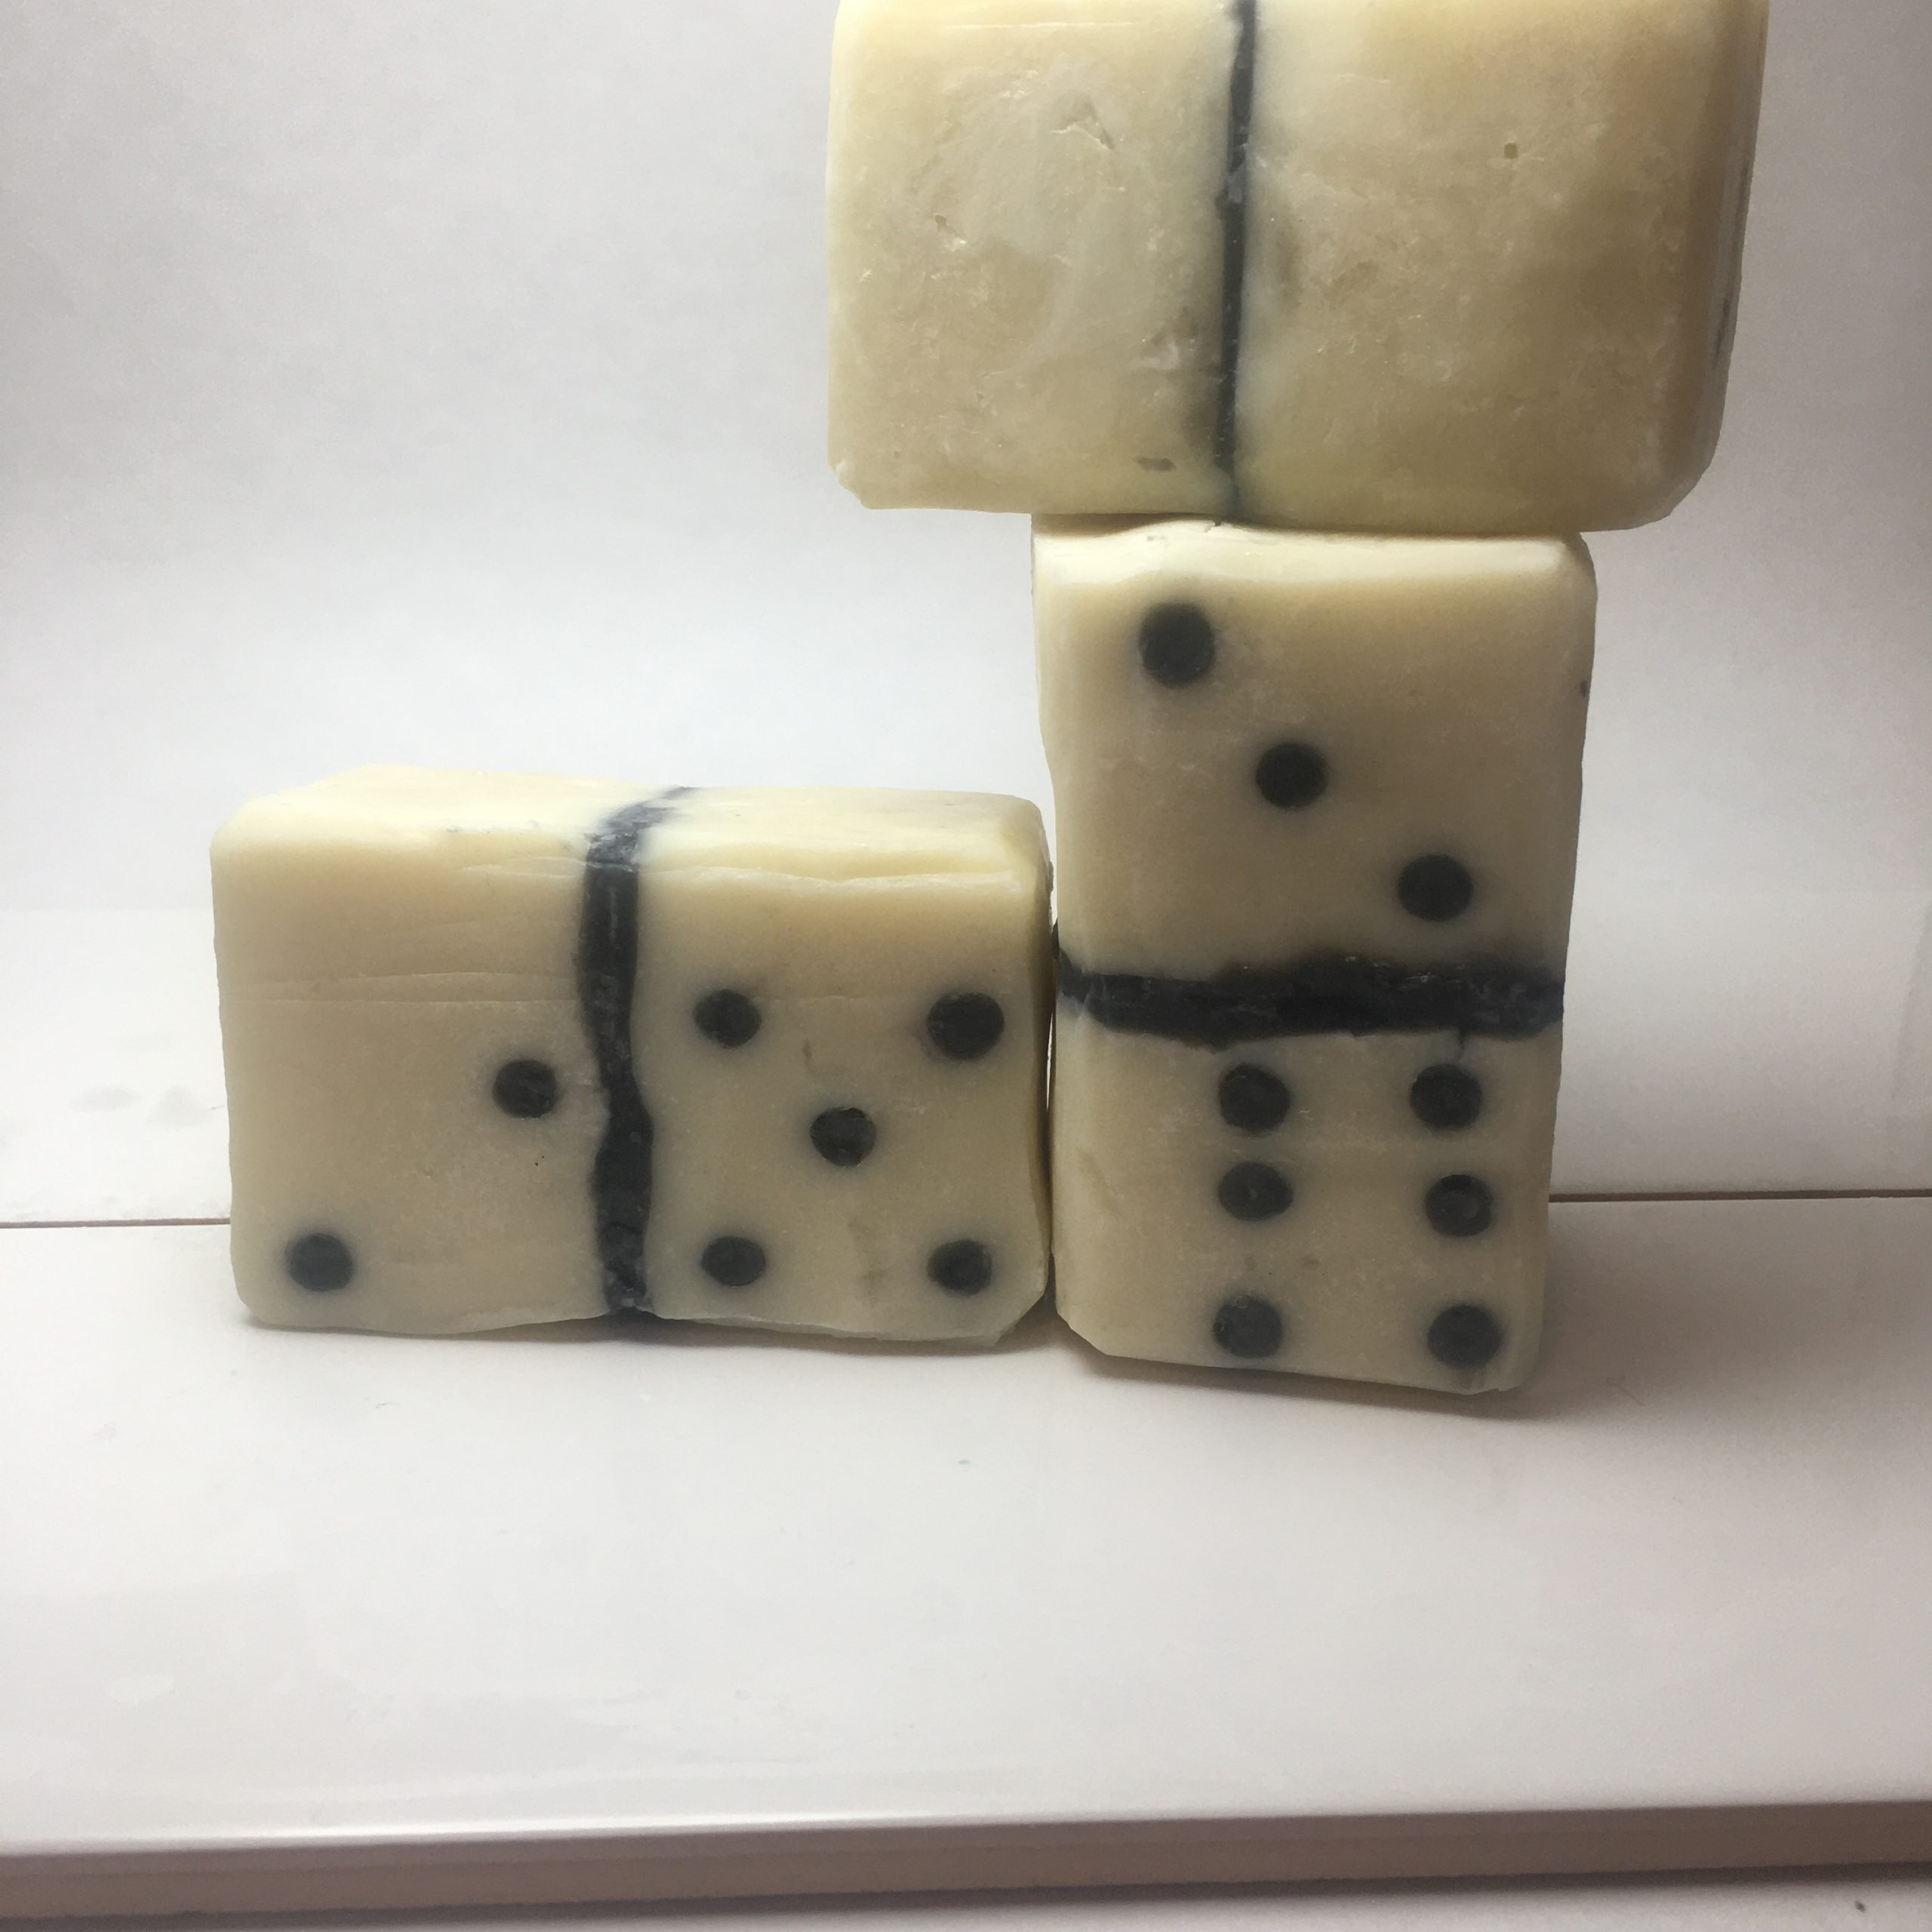 domino rsquo s any one